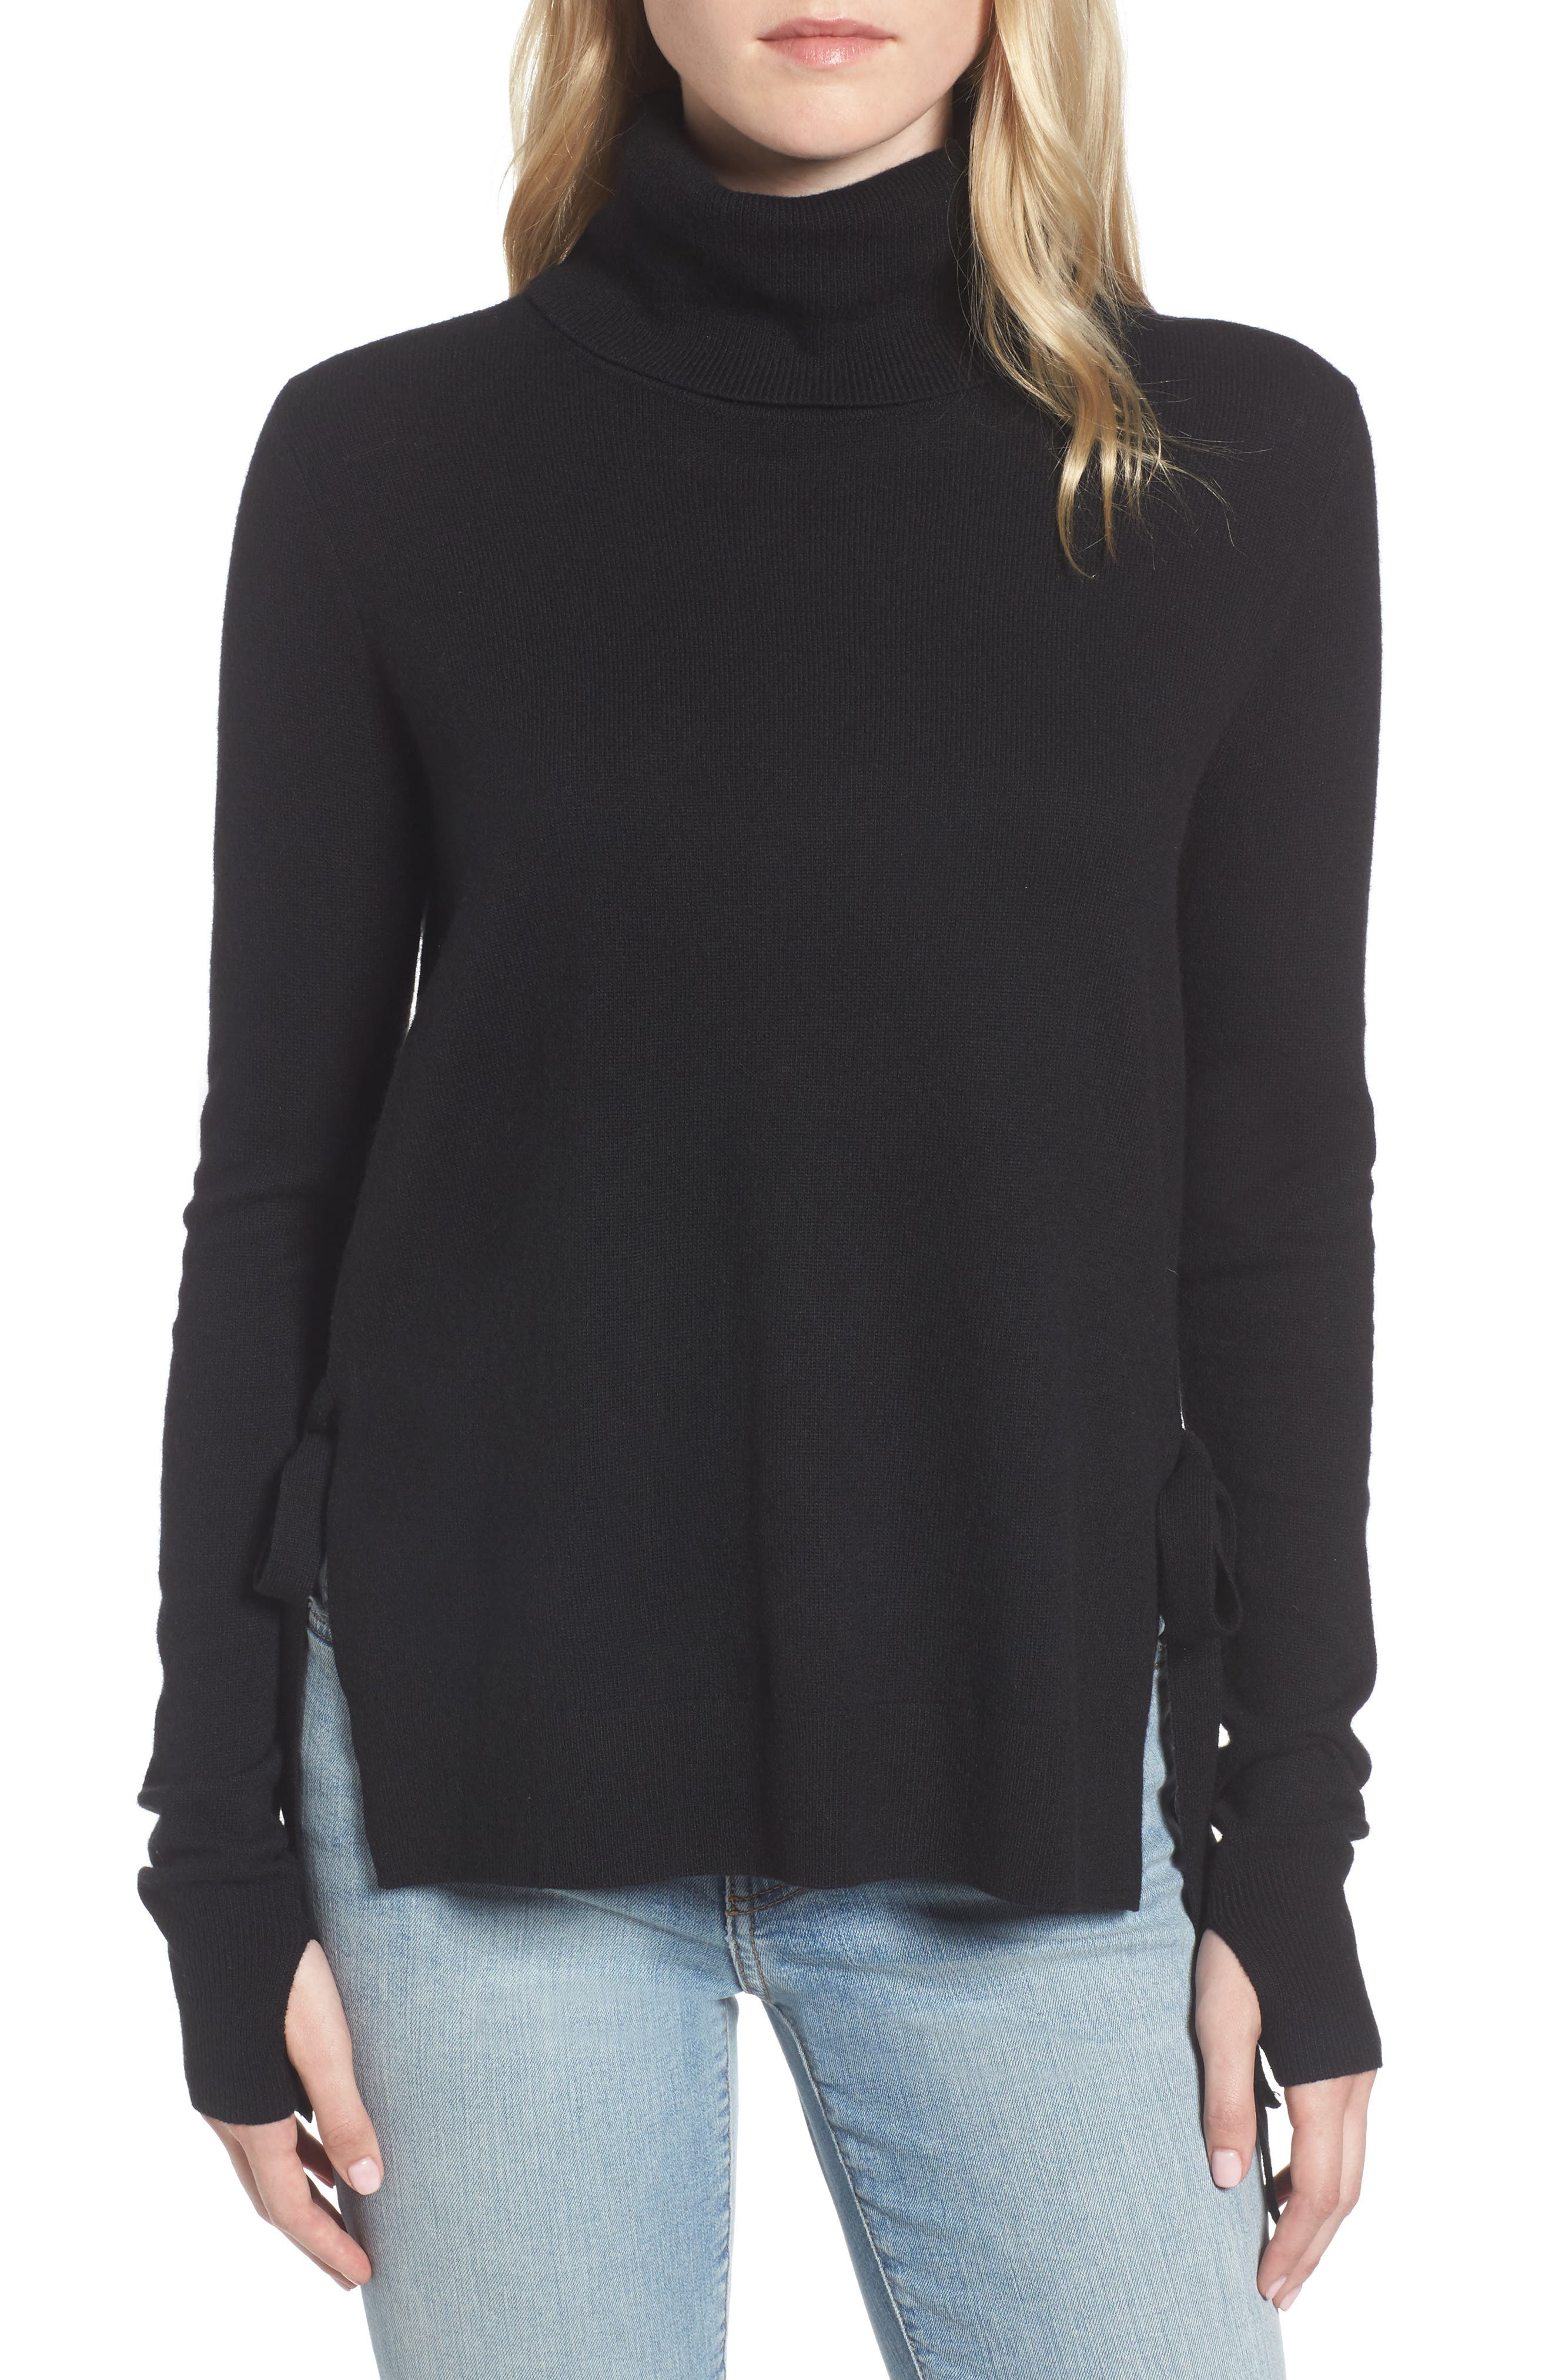 Alternate Image 1 Selected - Pam & Gela Distressed Turtleneck Sweater